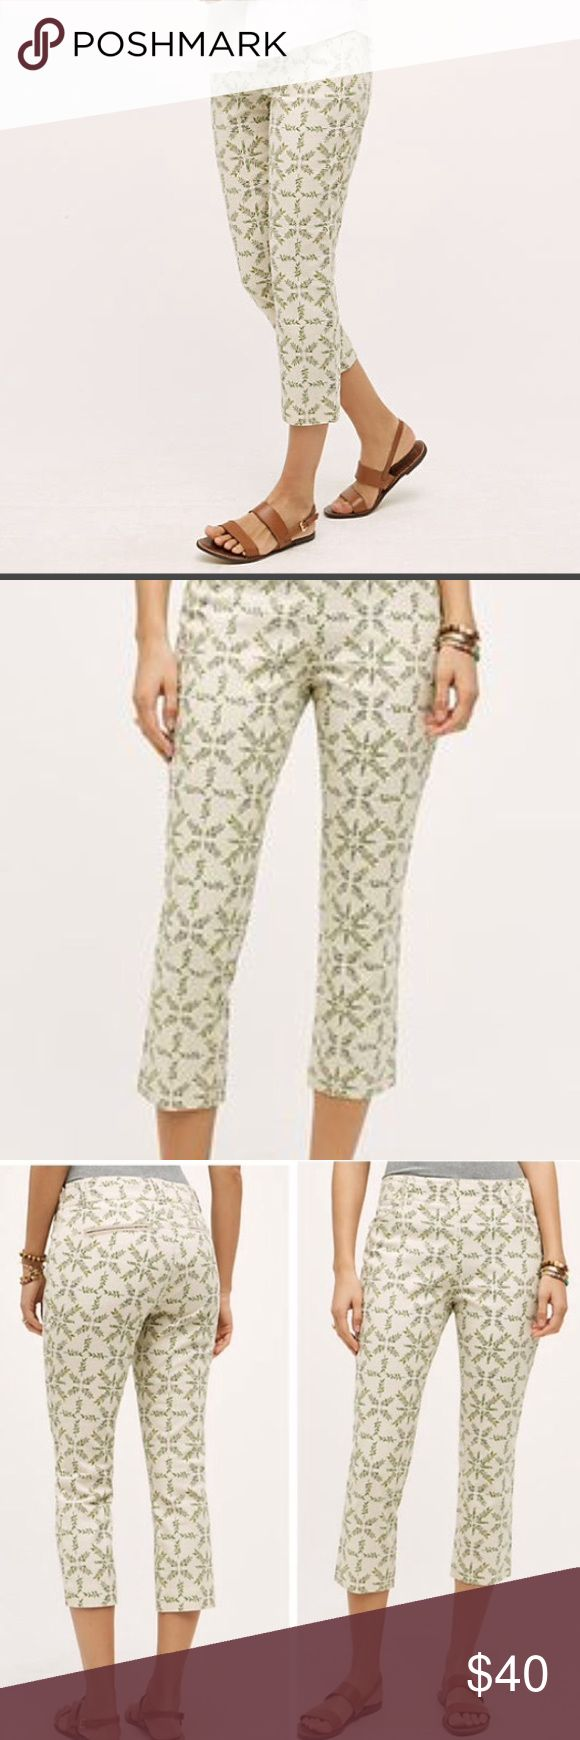 Cropped Medallion Charlie Trousers Cream trousers with green leaf pattern from Anthropologie. Worn only twice. Size 2. Side zipper. Anthropologie Pants Ankle & Cropped